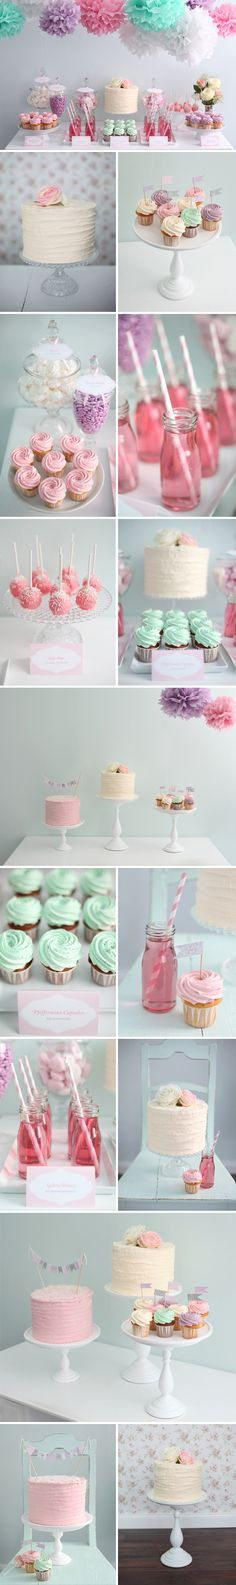 A pretty pastel party--perfect for spring!